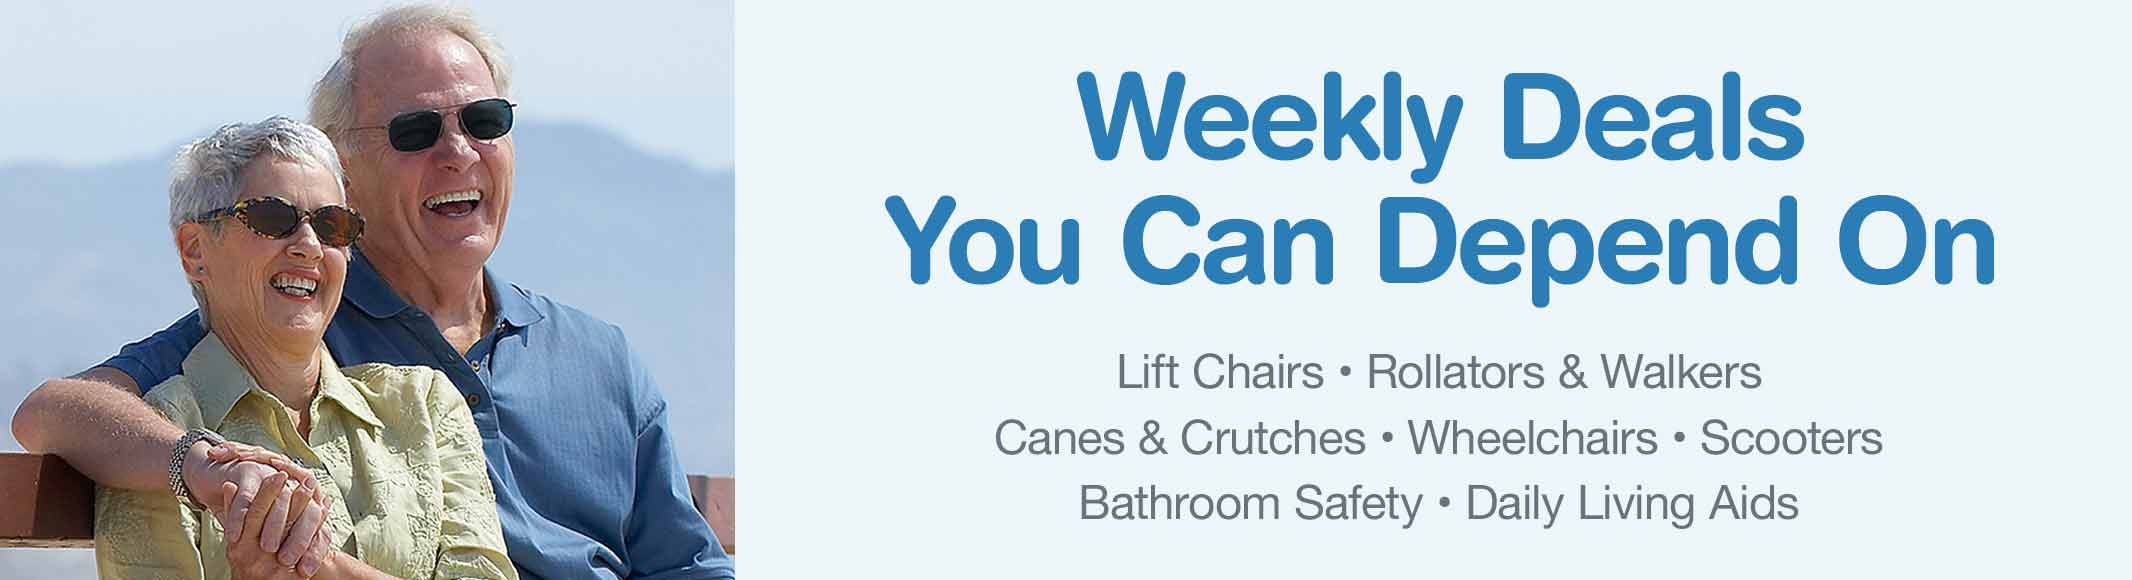 Weekly Deals You Can Depend On. Lift Chairs, Rollators & Walkers, Canes & Crutches, Wheelchairs, Scooters, Bathroom Safety, Daily Living Aids.